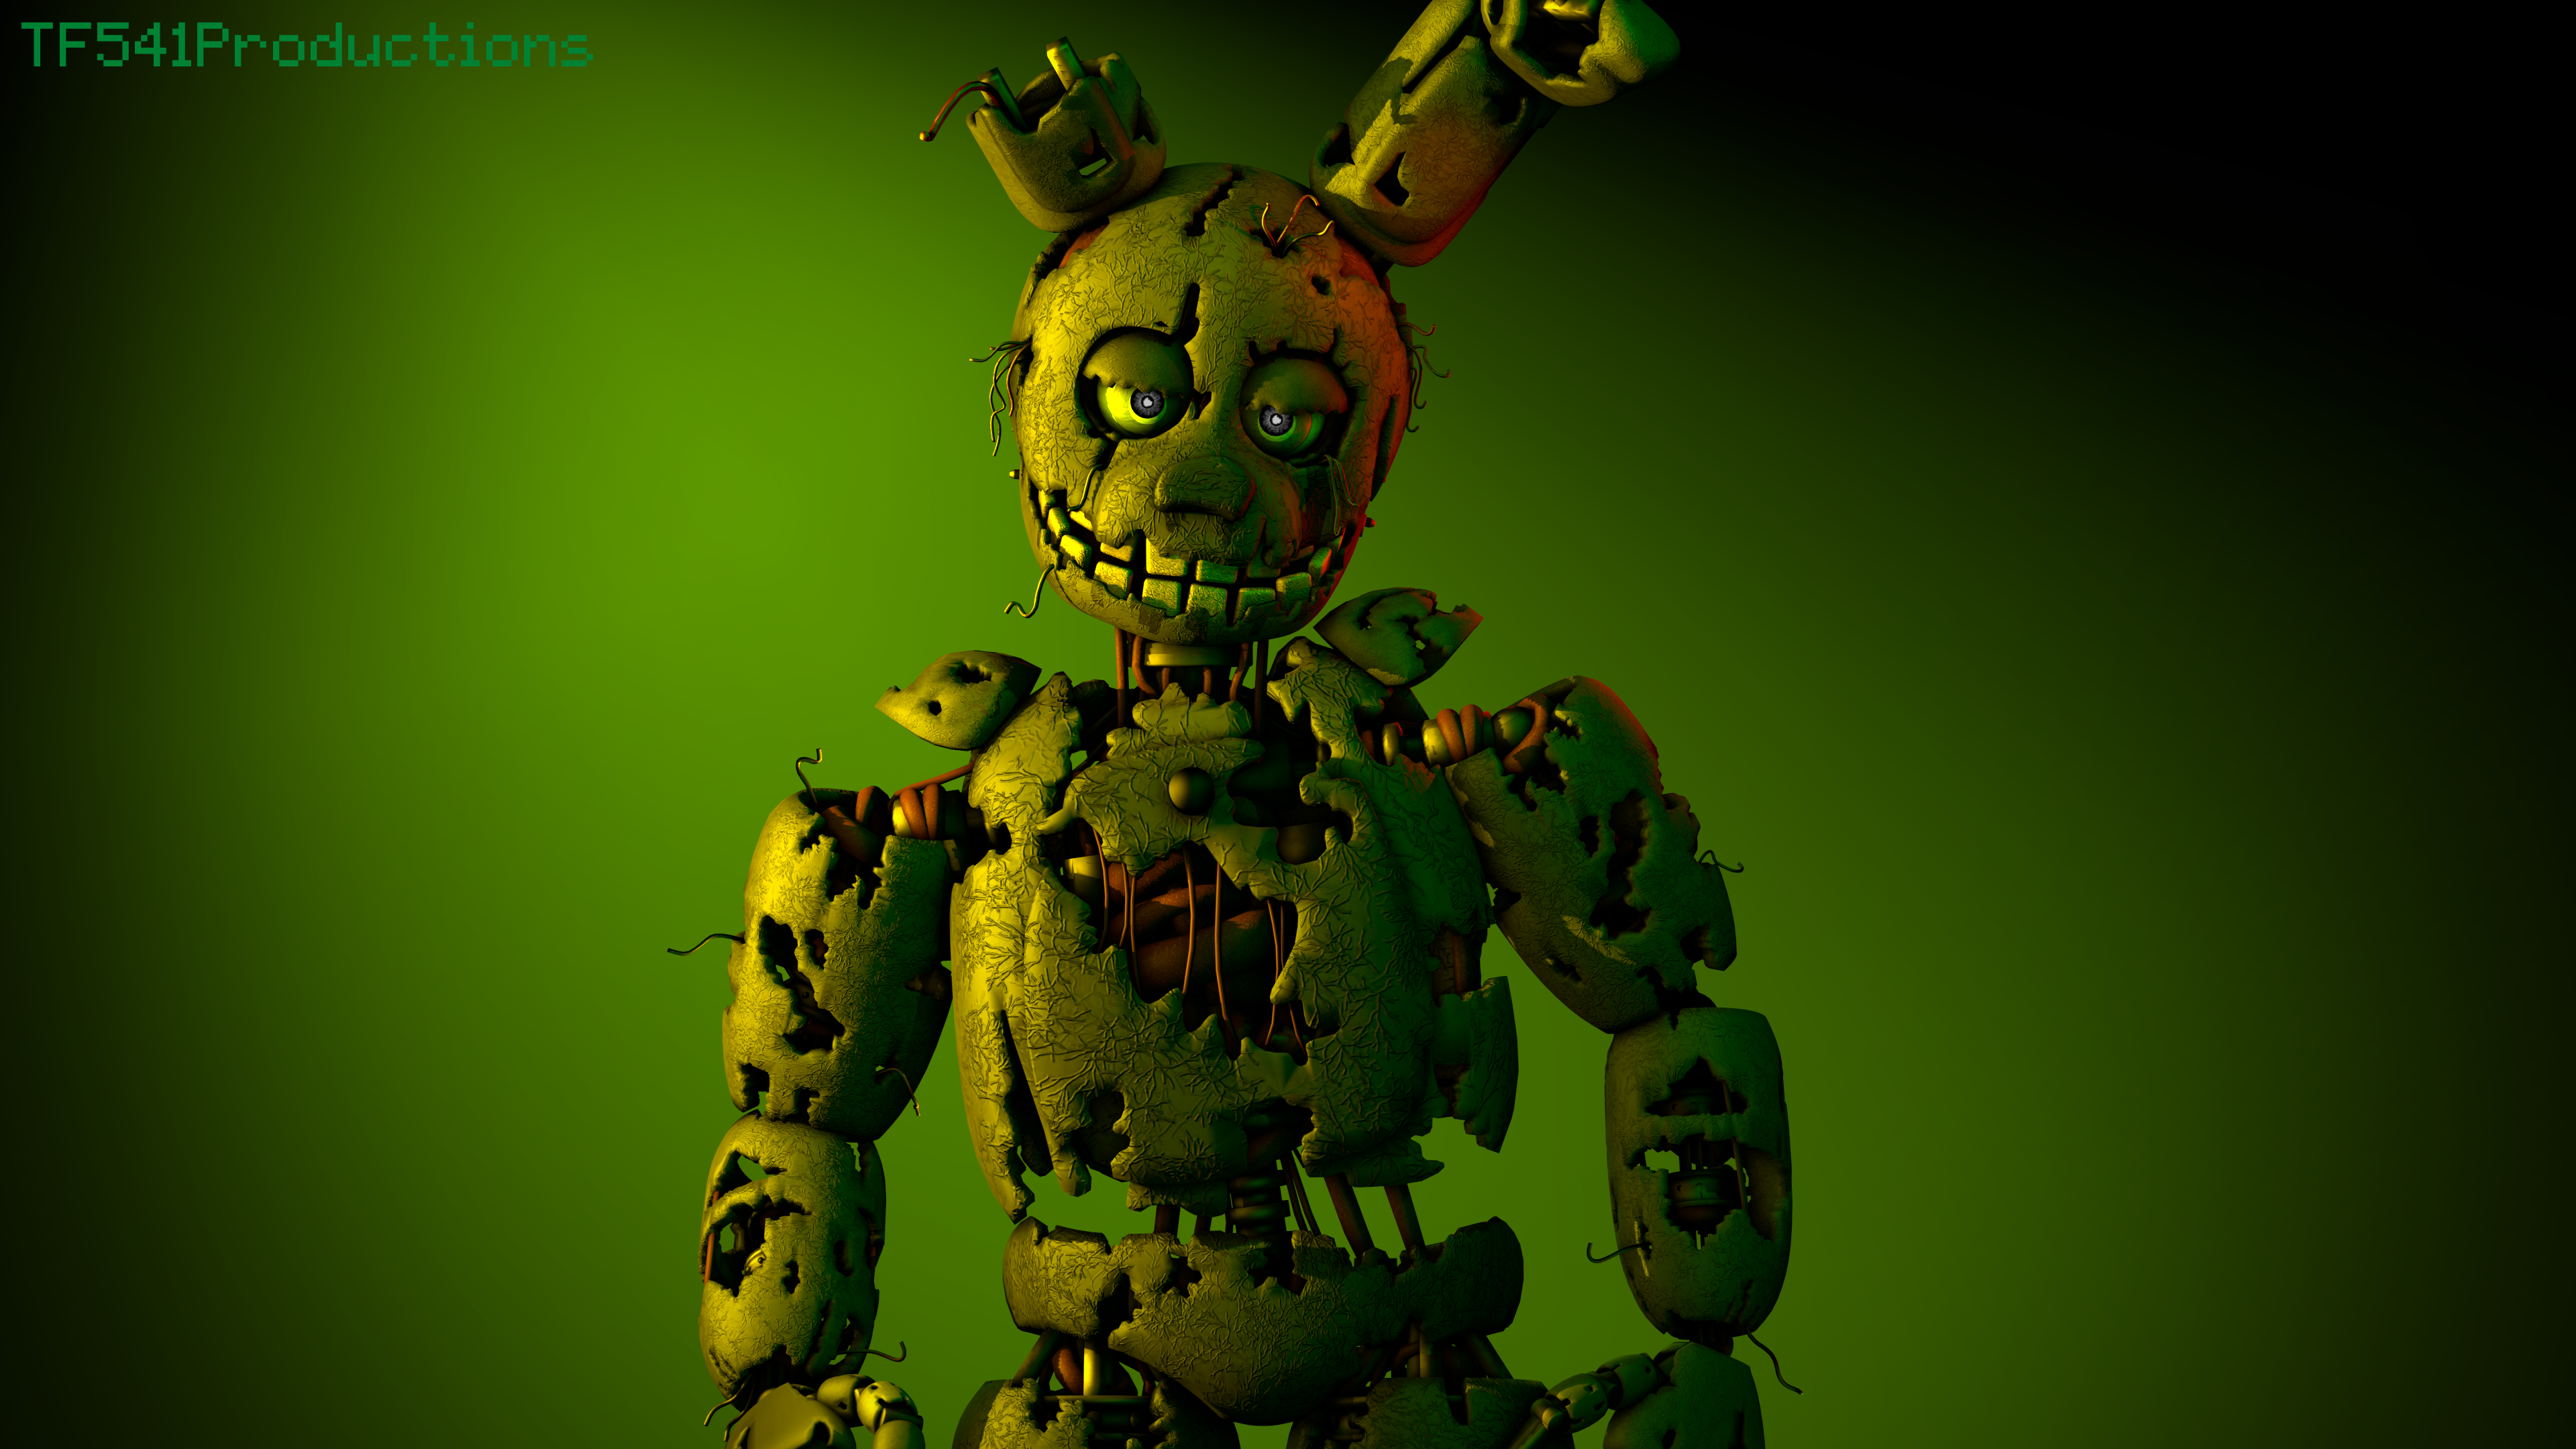 Springtrap V3 Render by TF541Productions